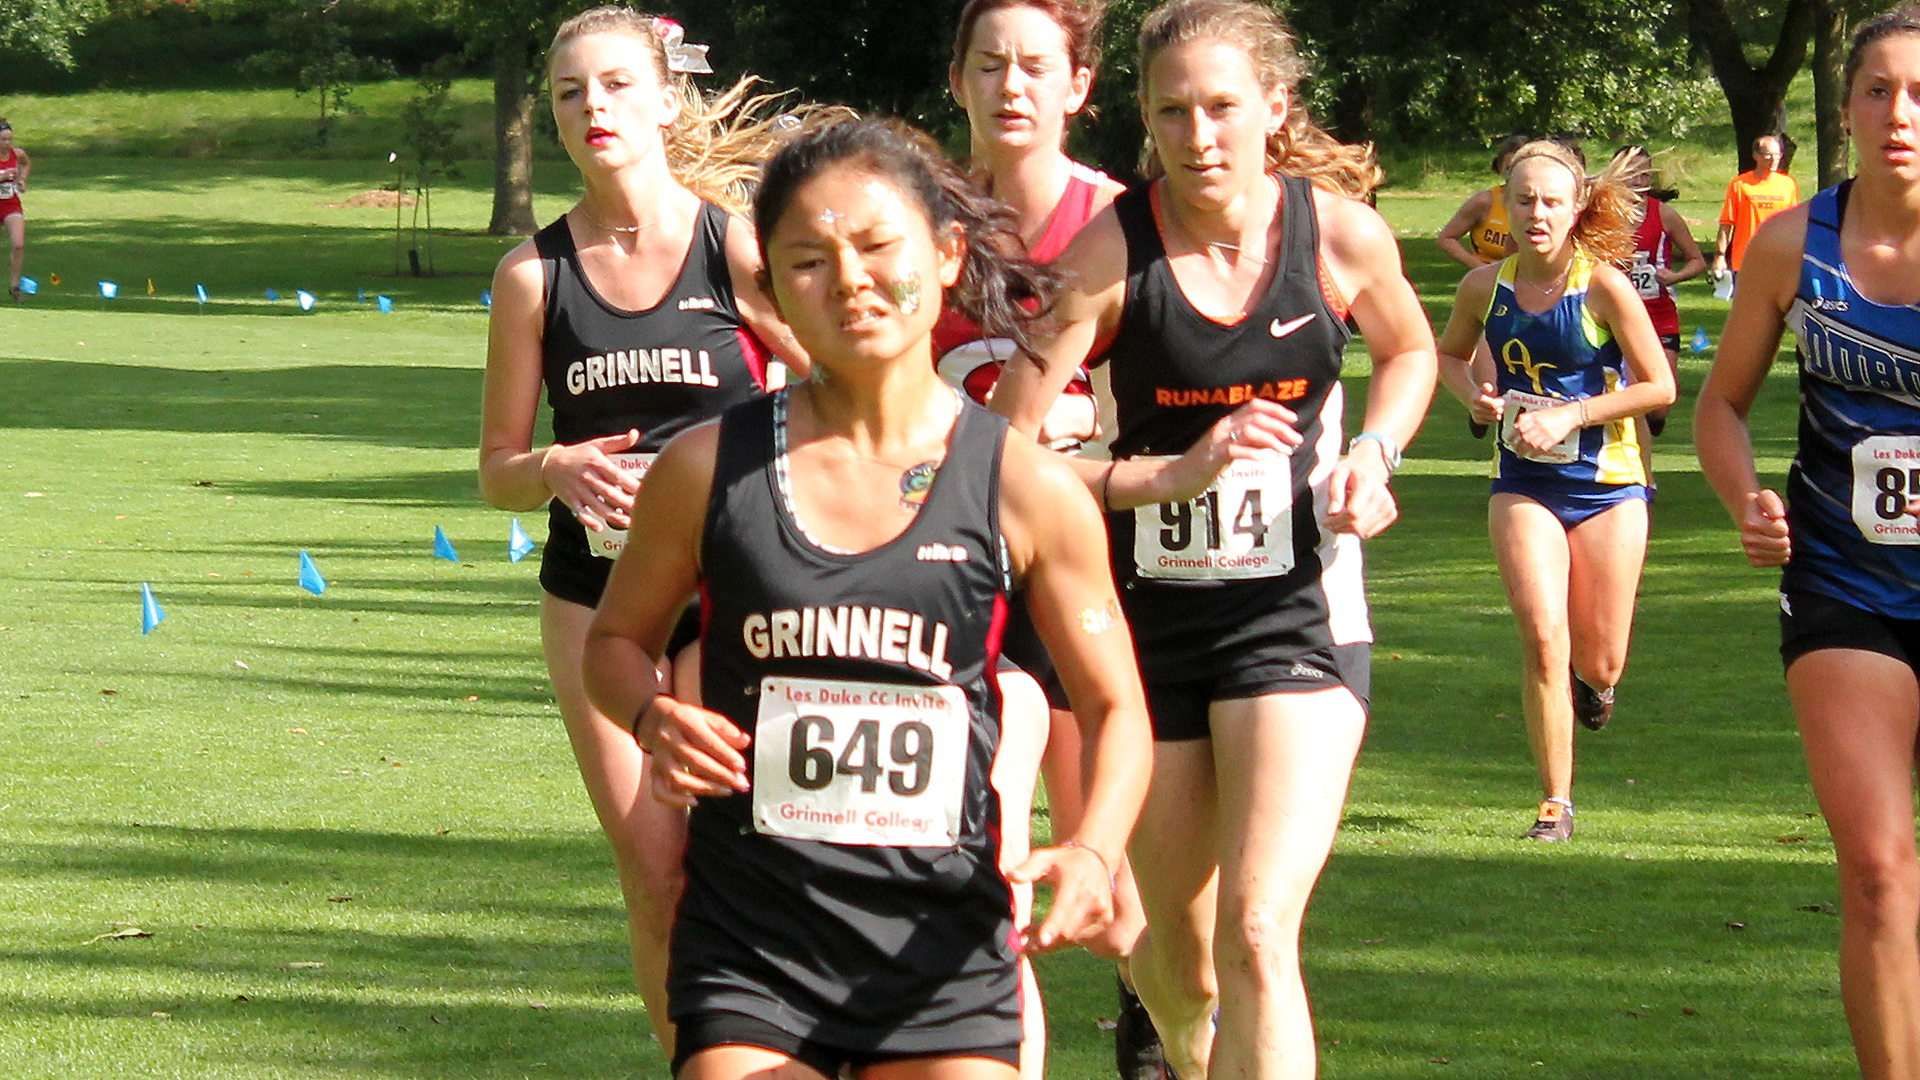 grinnell single girls Grinnell singles 100% free grinnell singles with forums, blogs, chat, im, email, singles events all features 100% free.